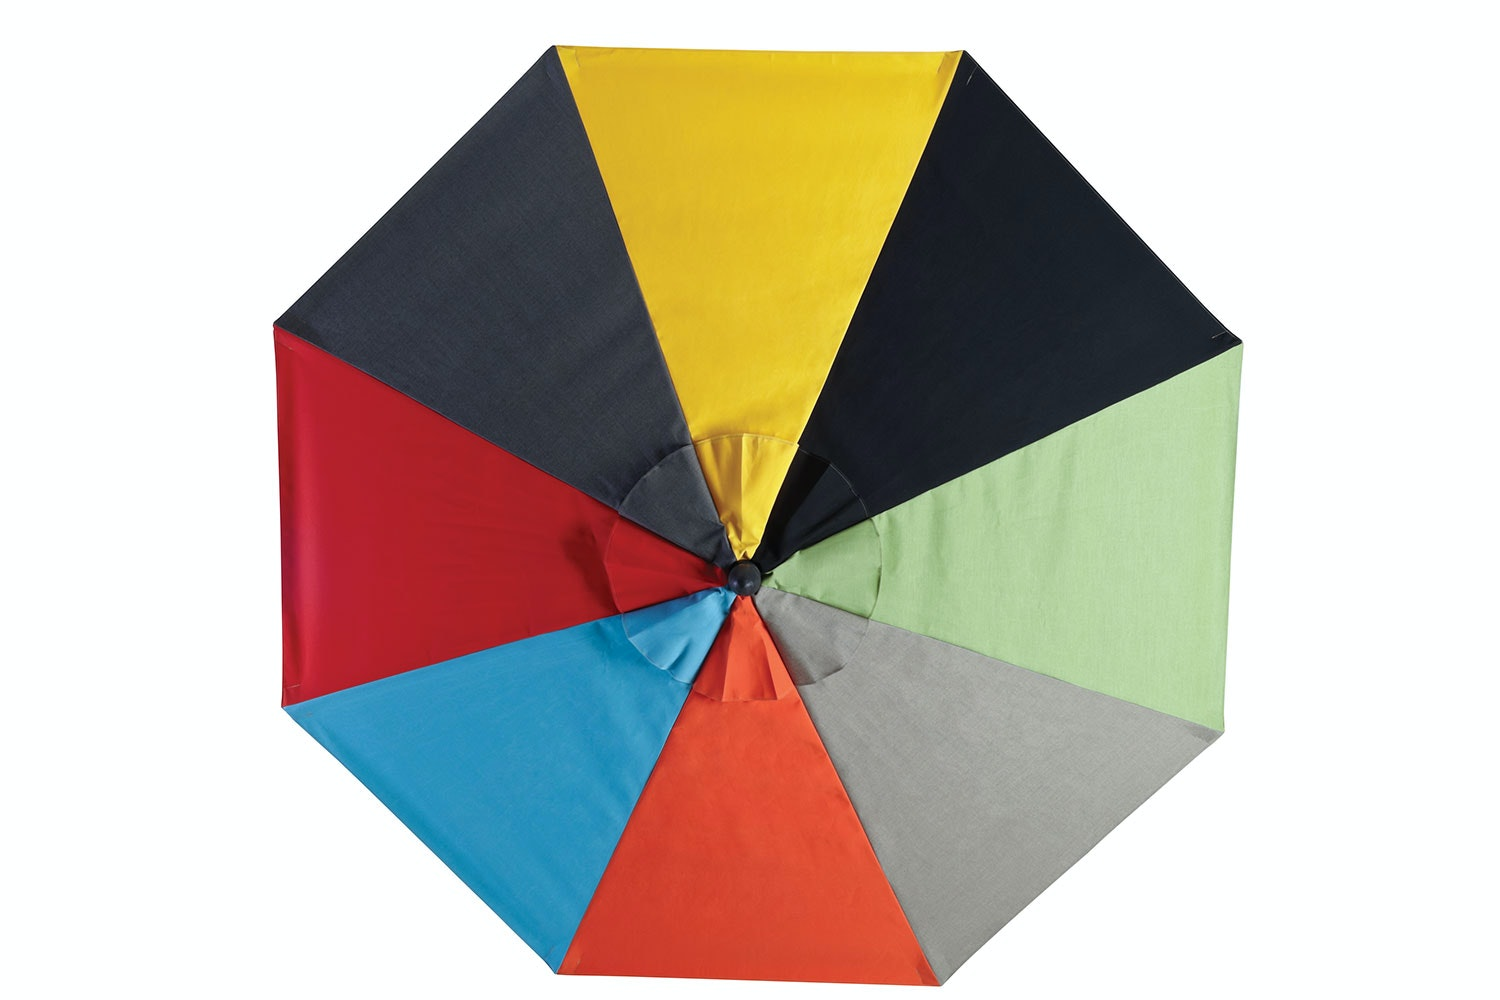 Triton 2.7m Acrylic Outdoor Umbrella by Peros